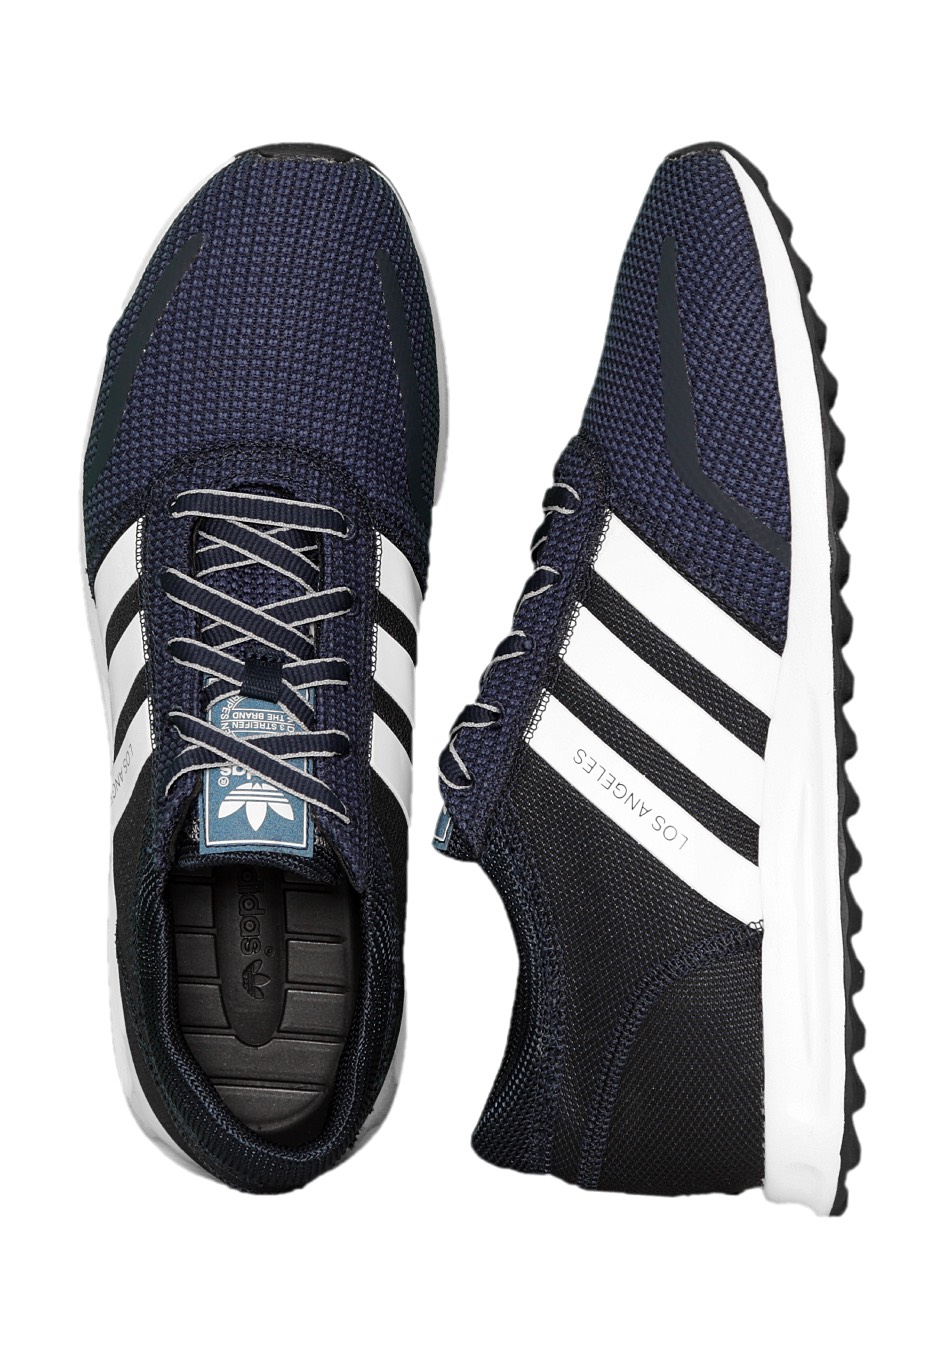 Adidas Schuhe Whitegranite Angeles Collegiate Los Navyoff fvwHqB6